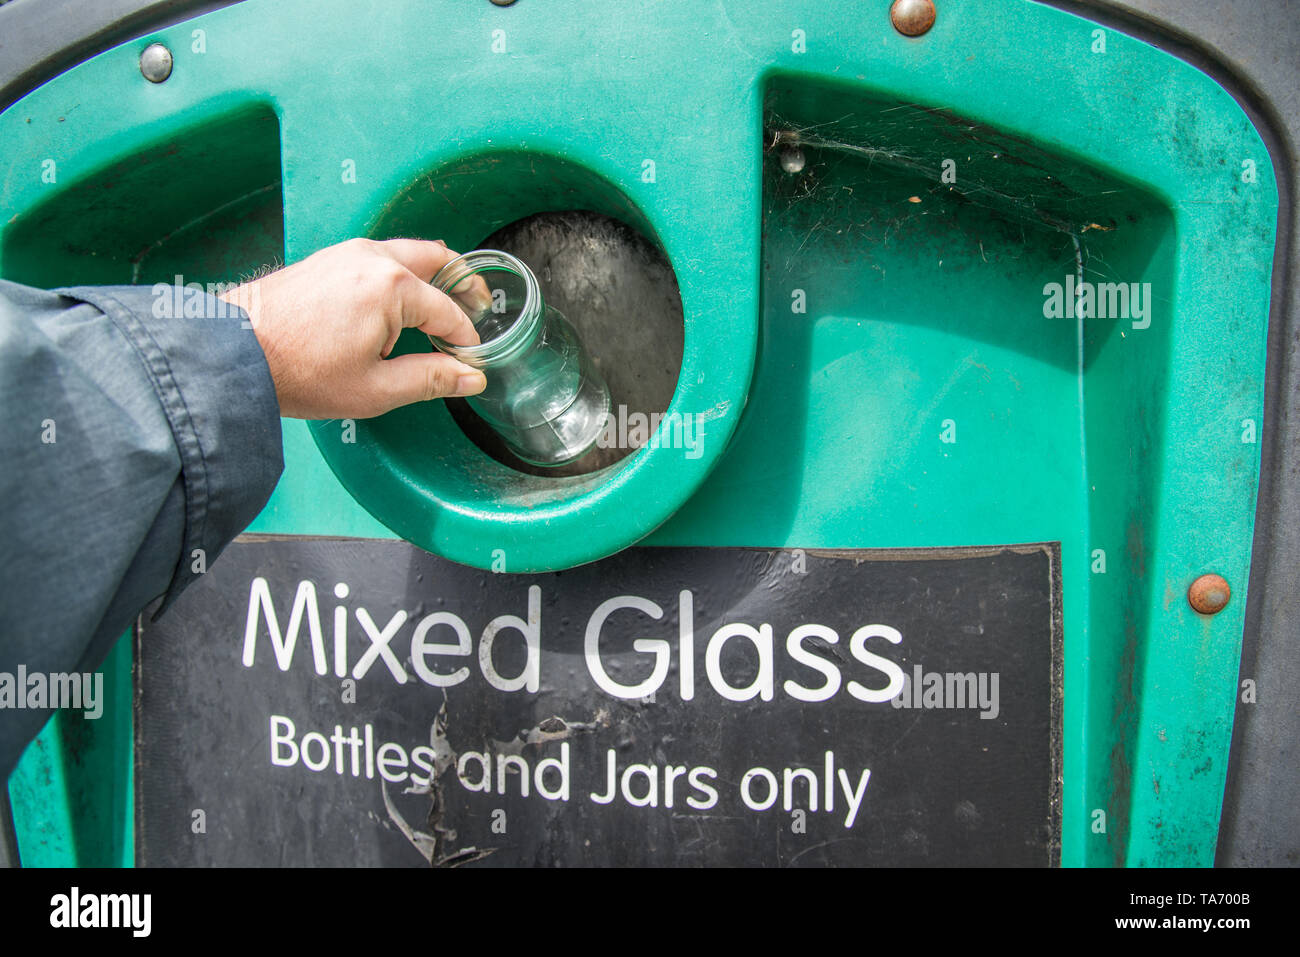 Putting glass bottles and jars into collection bin at local recycling center,Hampshire,UK.bottle bank. - Stock Image